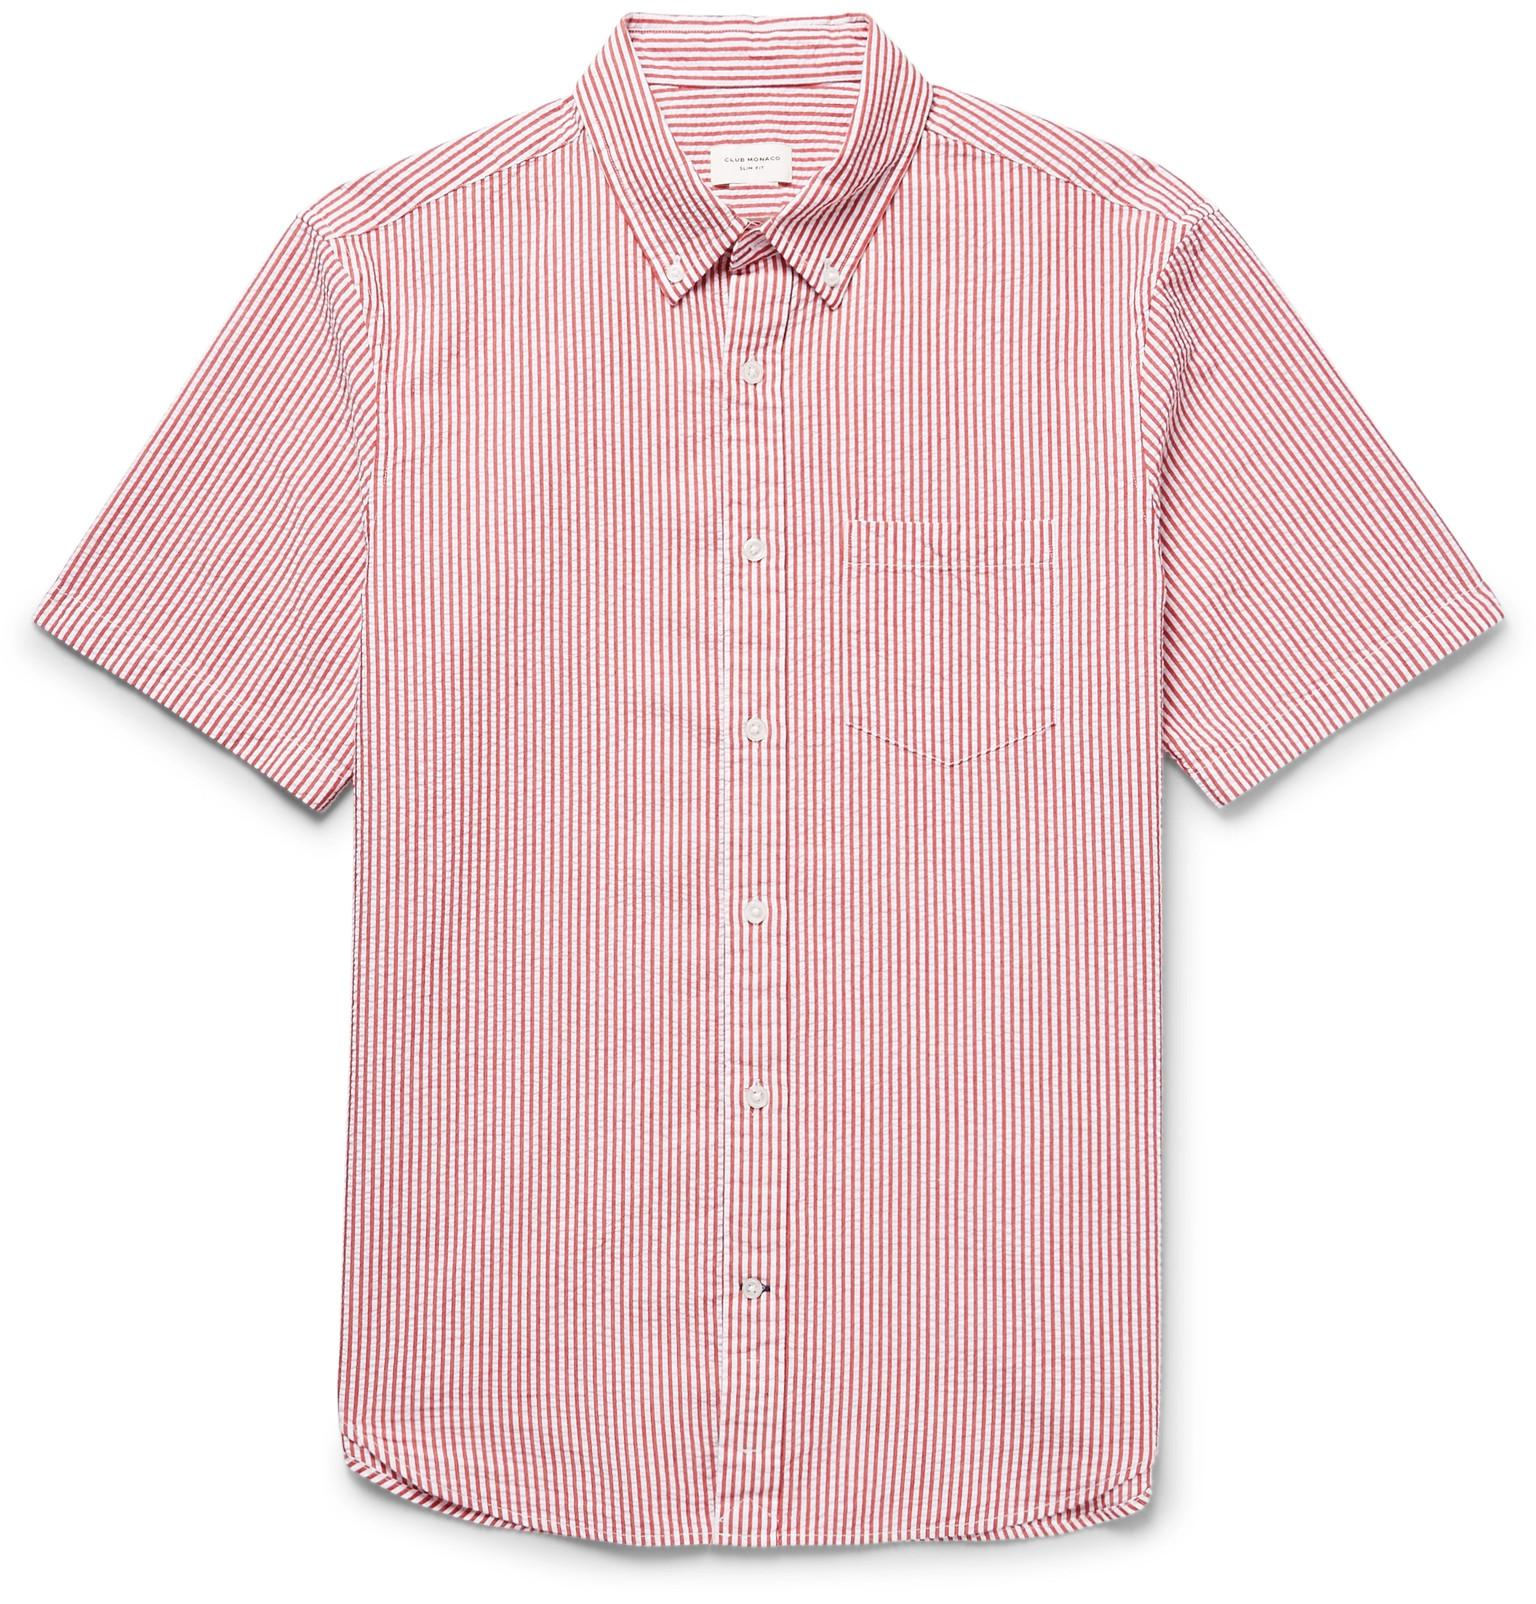 feadb543f24 Lyst - Club Monaco Slim-fit Button-down Collar Striped Cotton ...